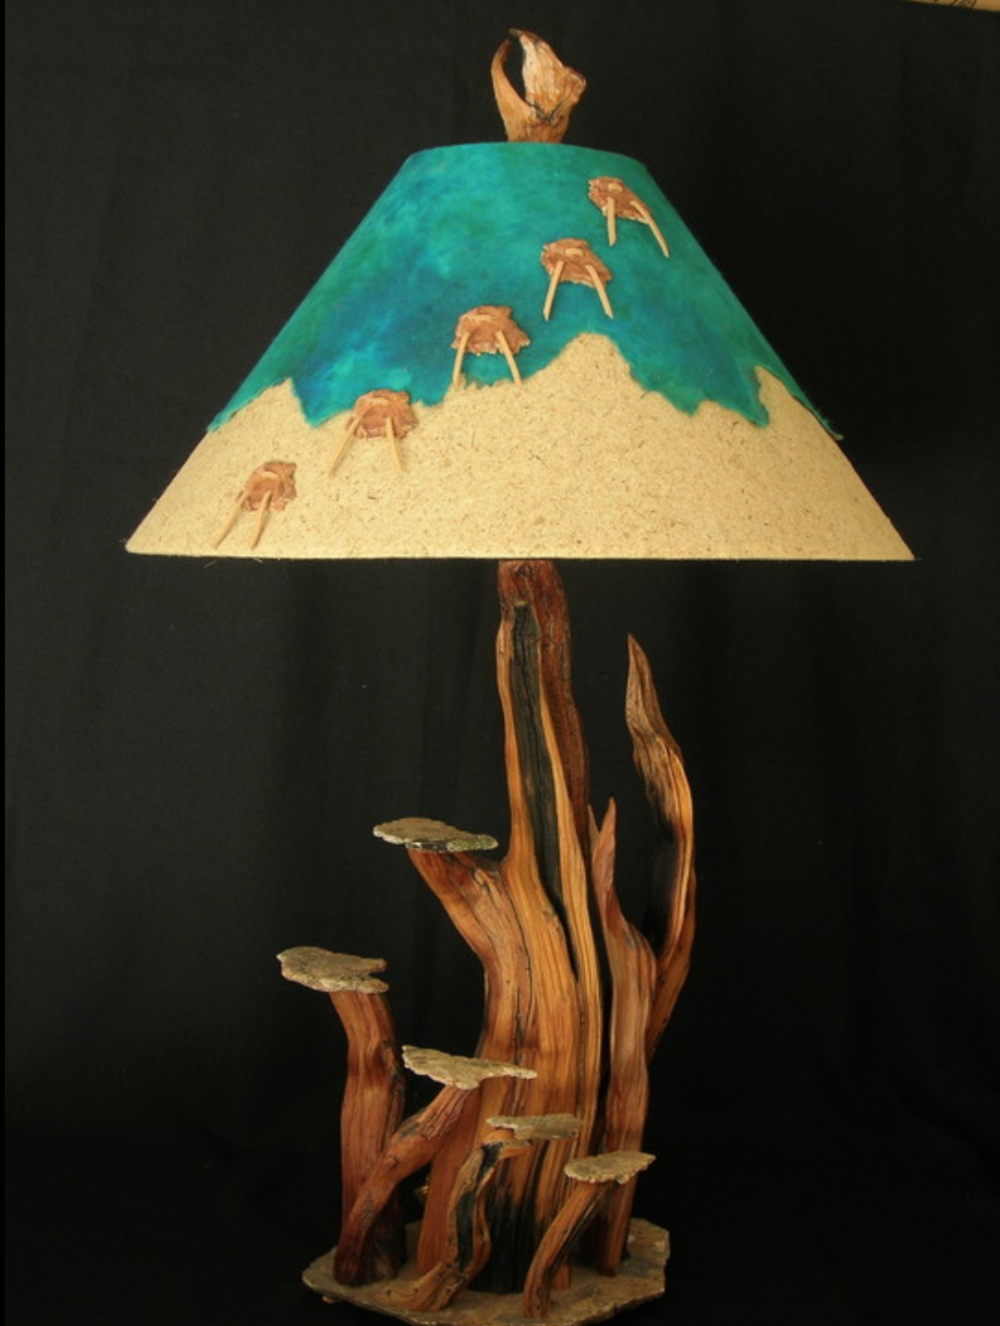 Randall Smith - http://Lampsbyfoxtail.comThe Lamps are made from roots of expired bristlecone pines. Various parts are arranged or intertwined to form the whole piece, then married to a base of unaltered granite Talus